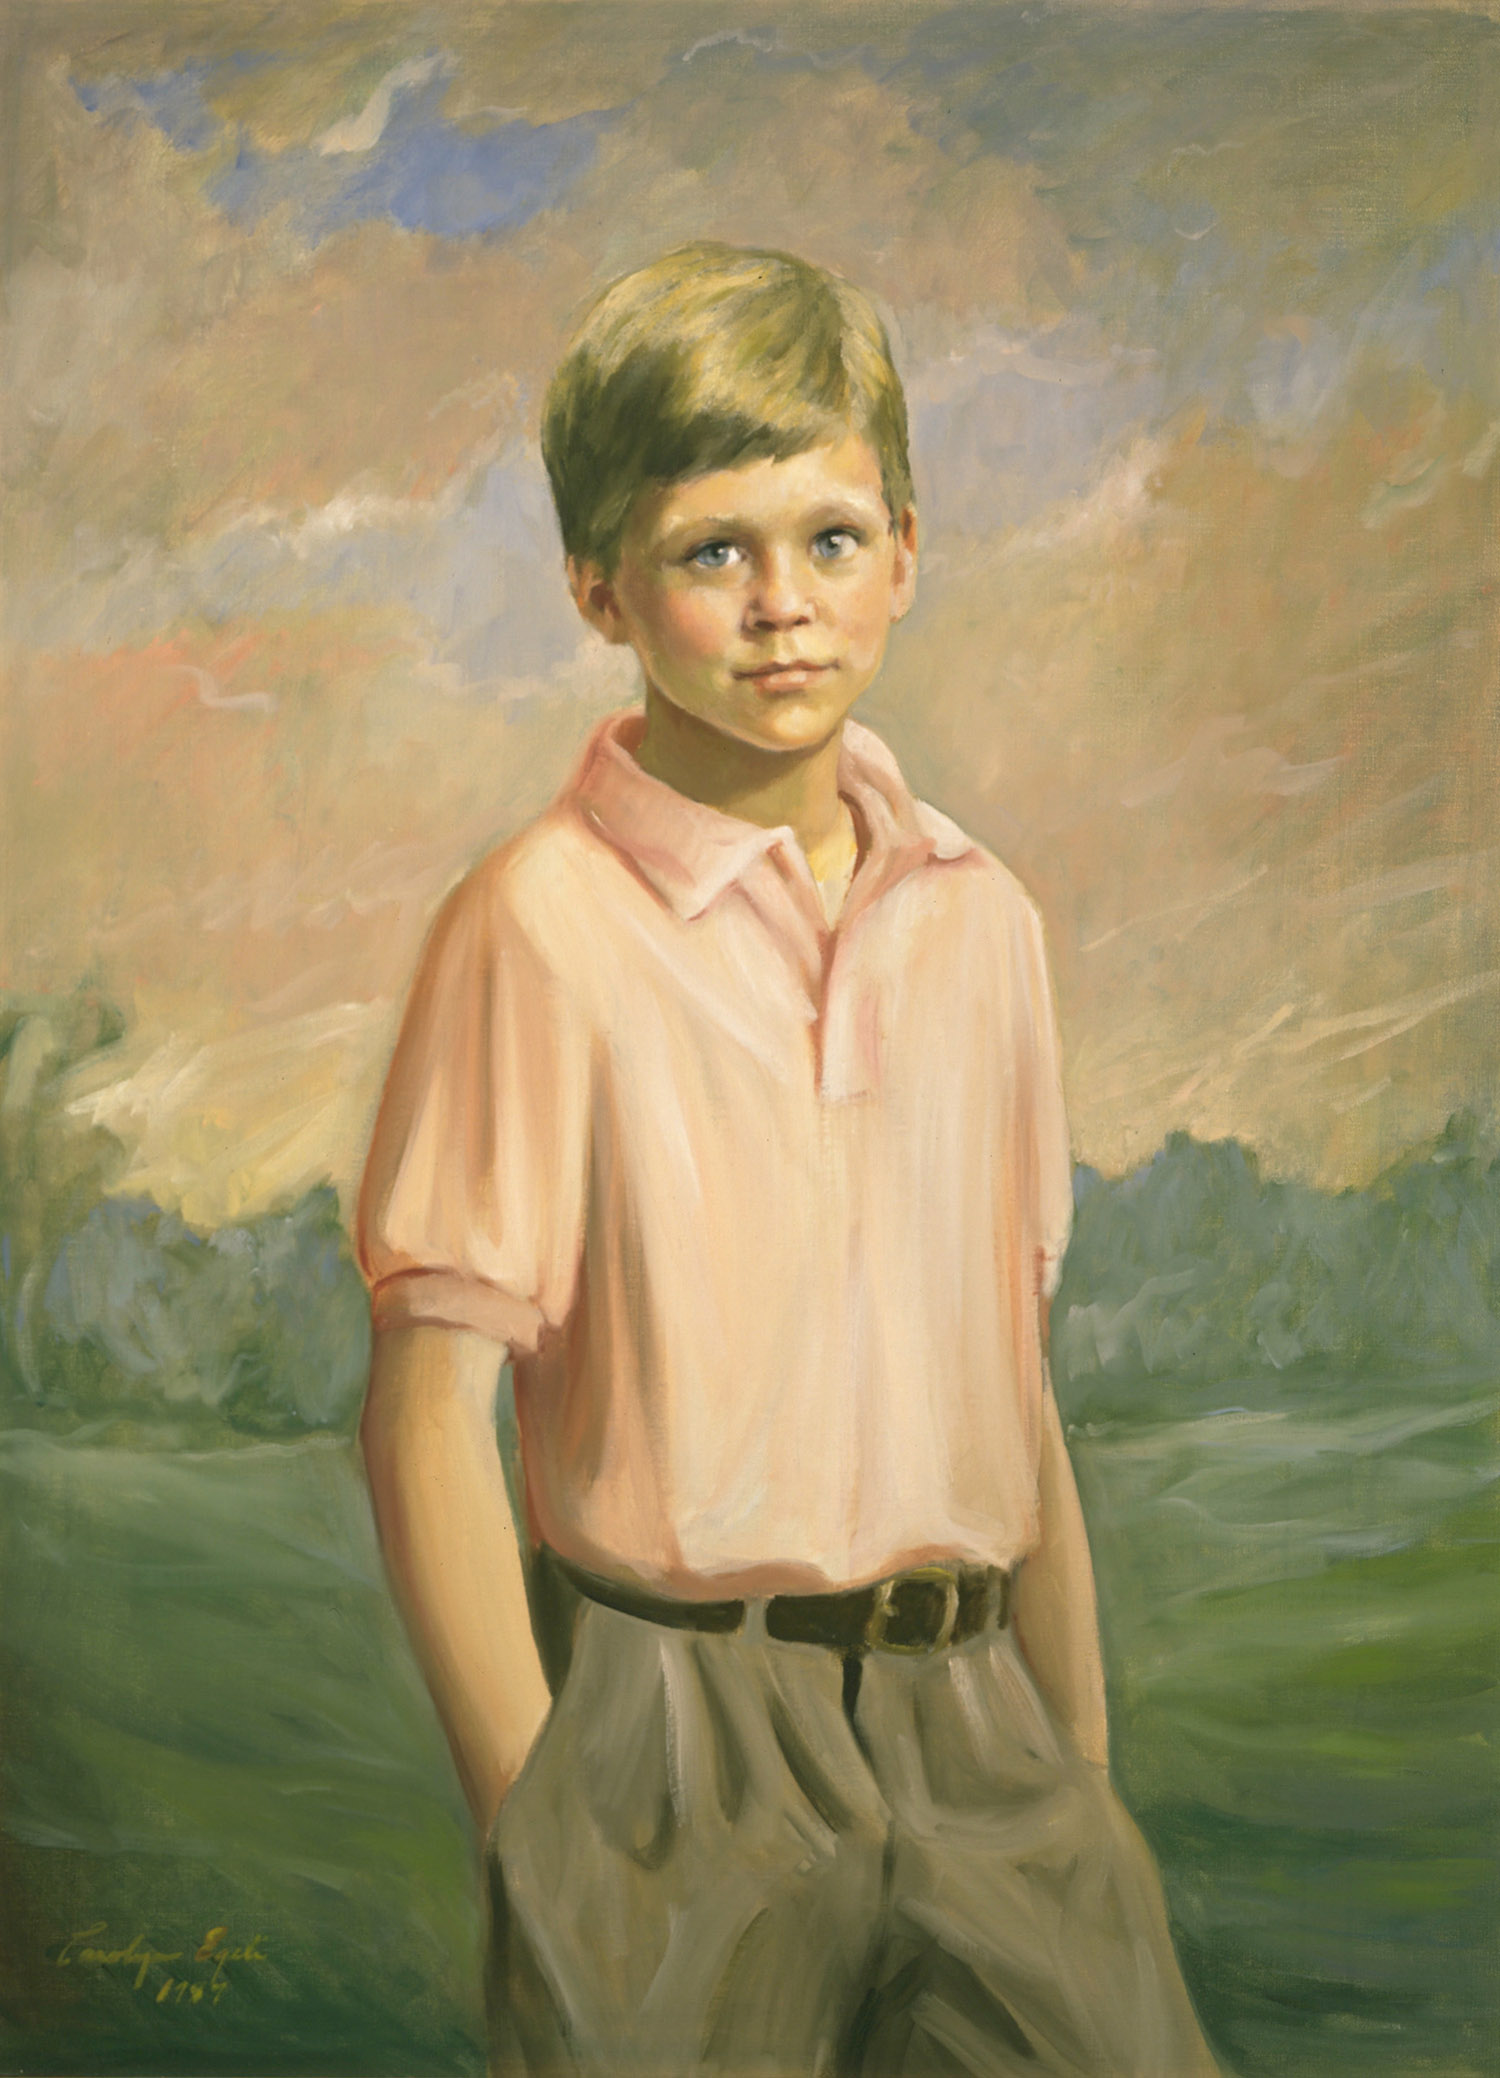 "Young Southern Boy, 30"" x 36"". Commission."